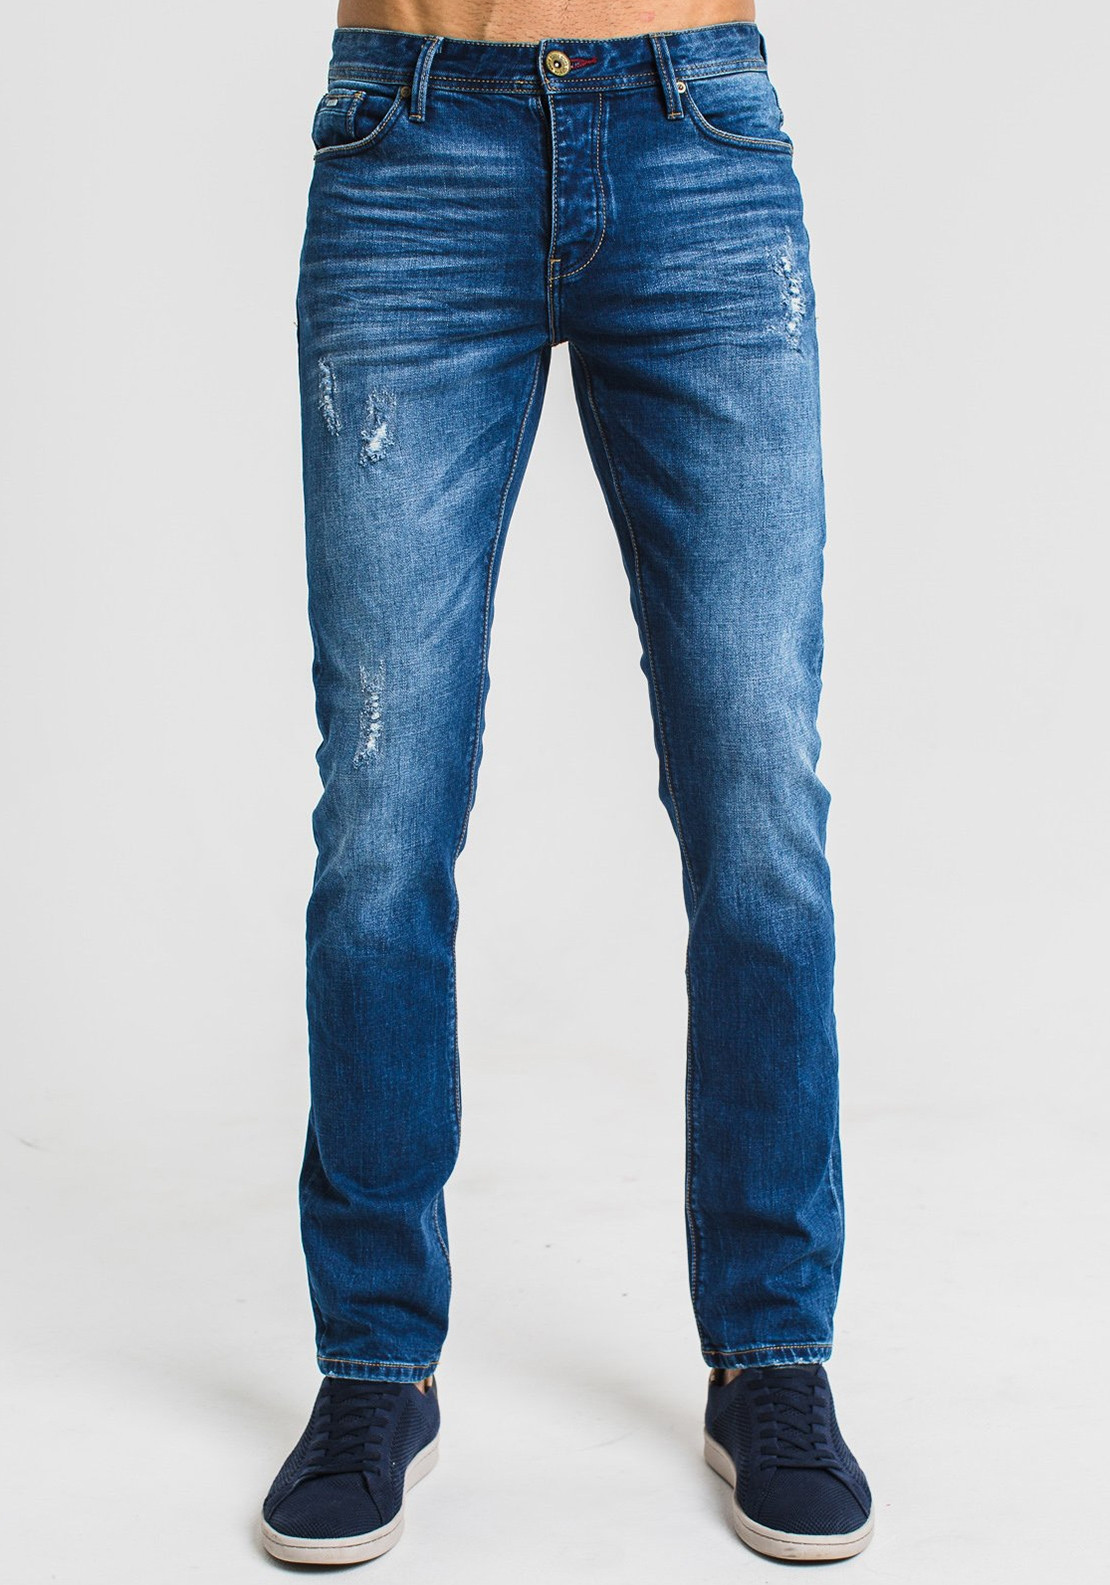 522b36f7 Diesel Men's Scott Slim Fit Jeans, Blue. Be the first to review this product